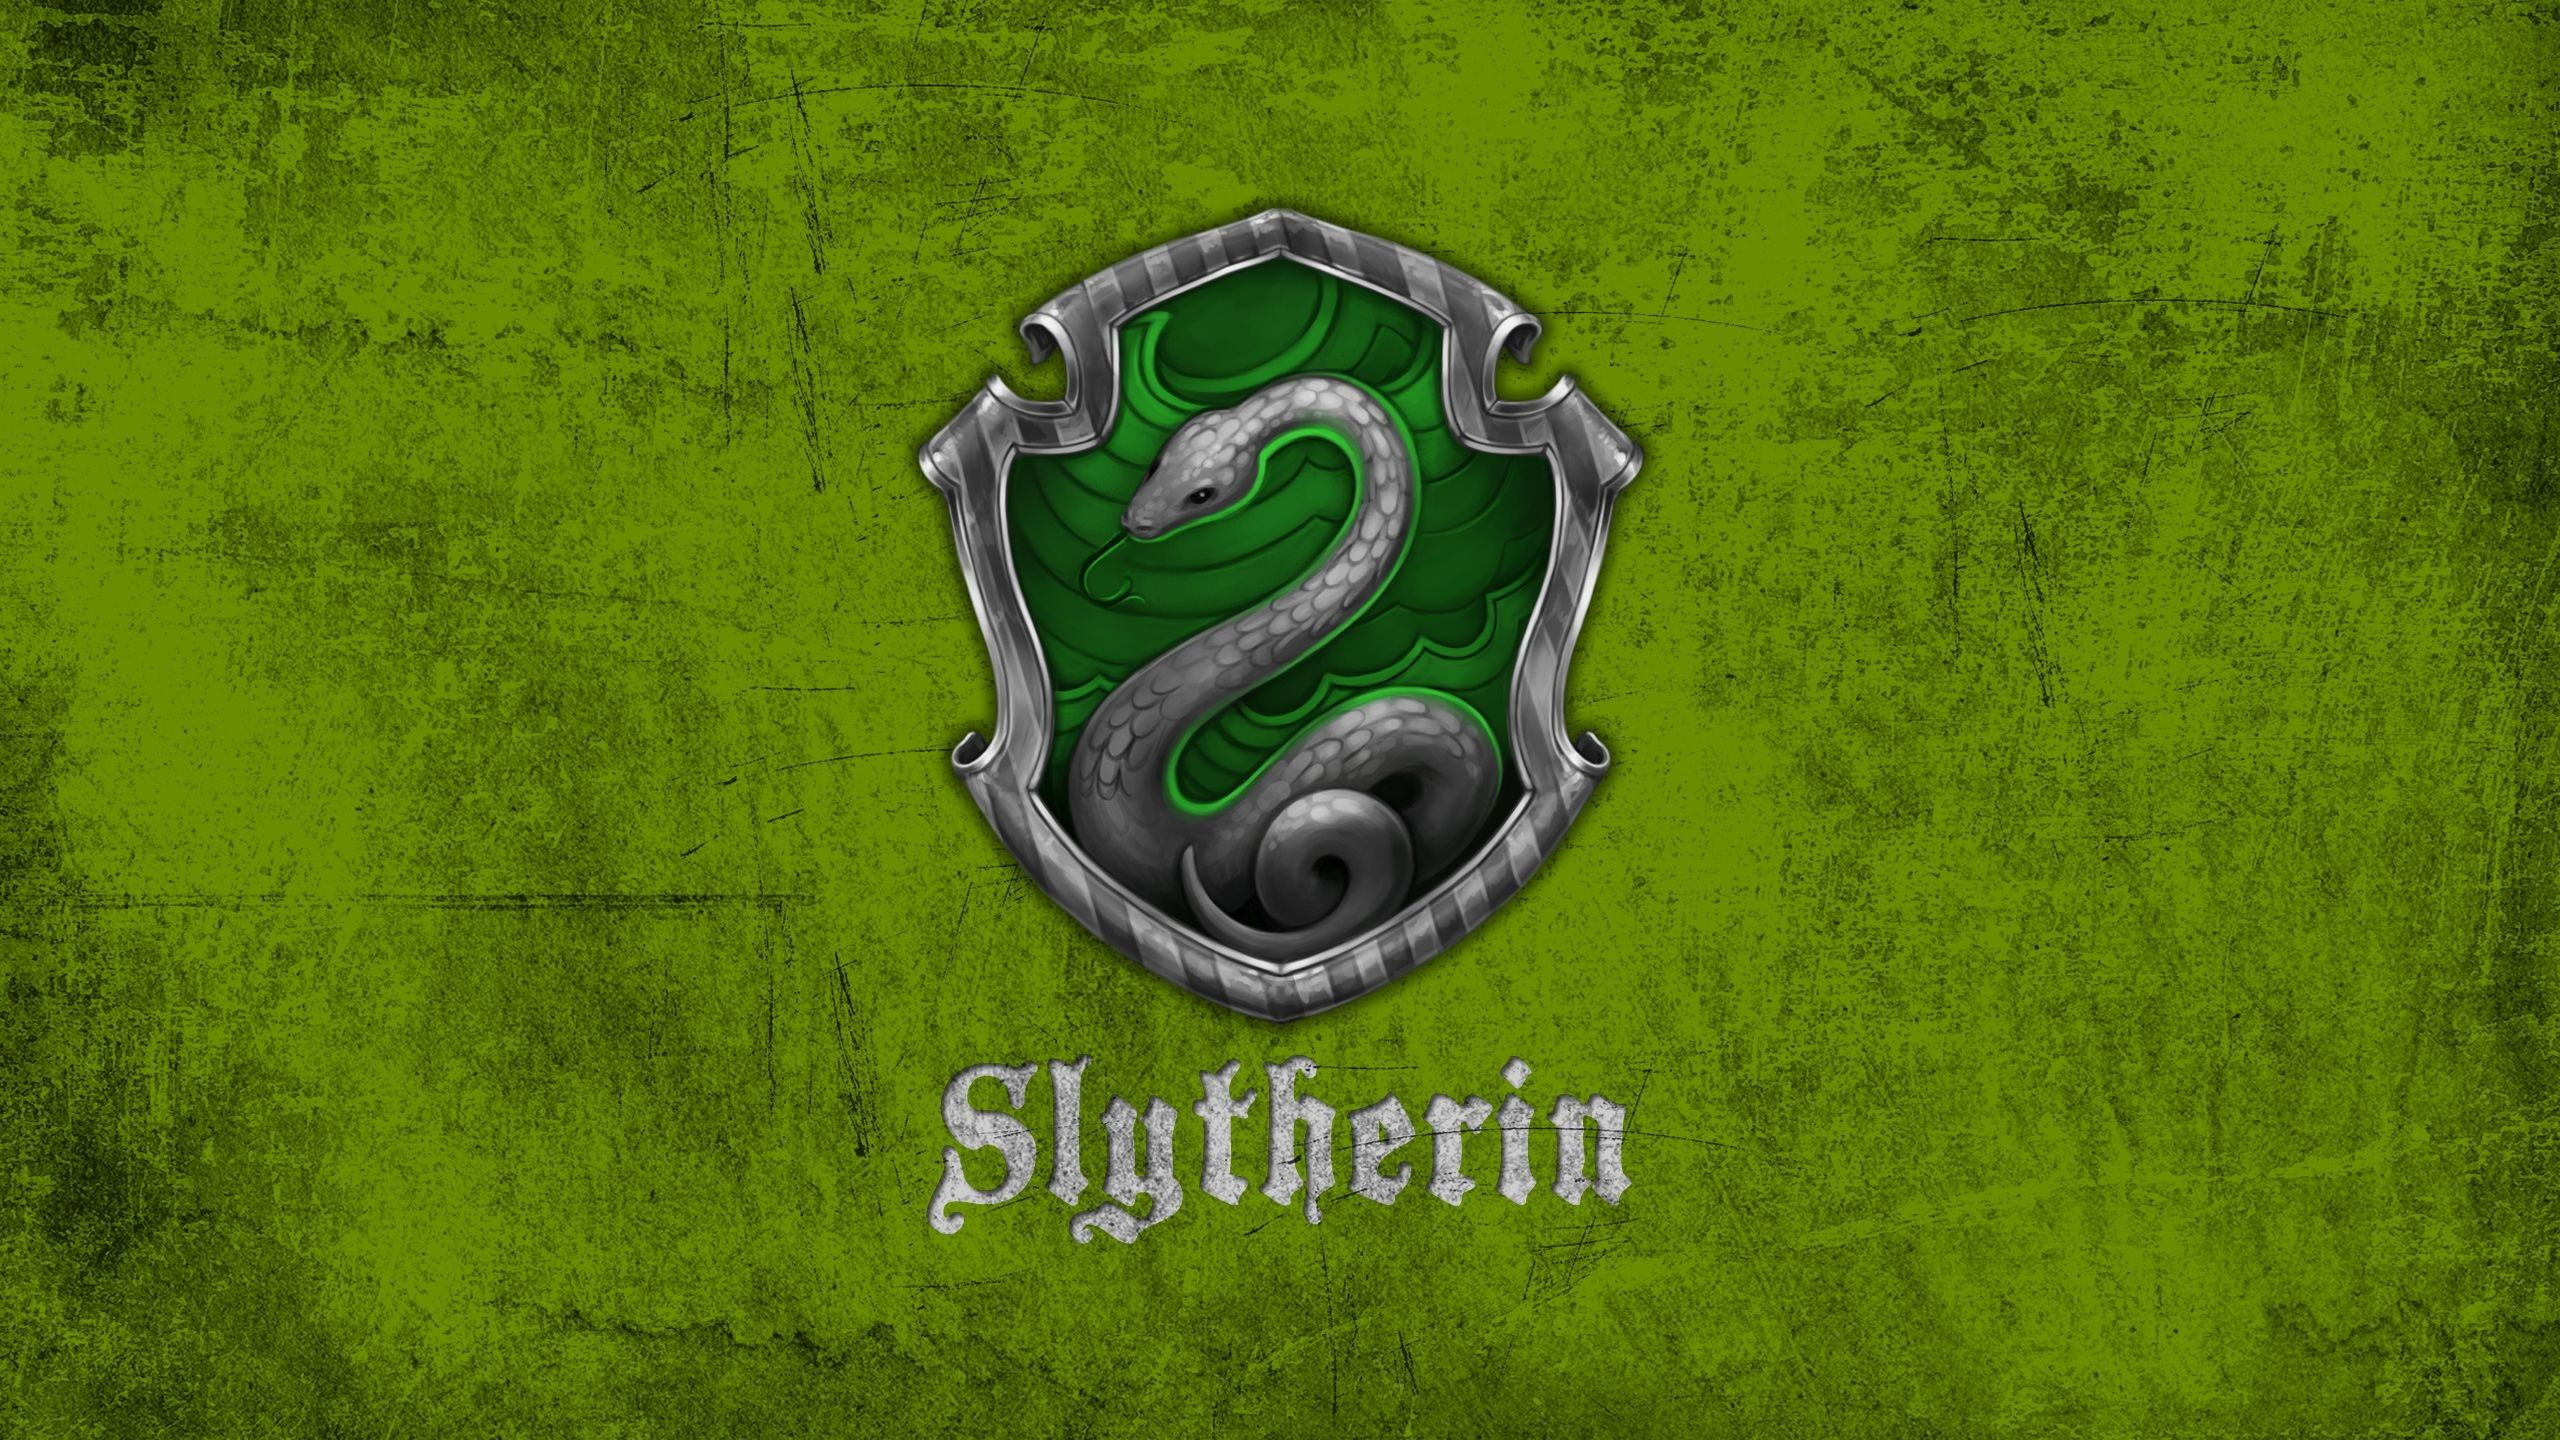 2560x1440 80+ Hd Slytherin Wallpapers on WallpaperPlay